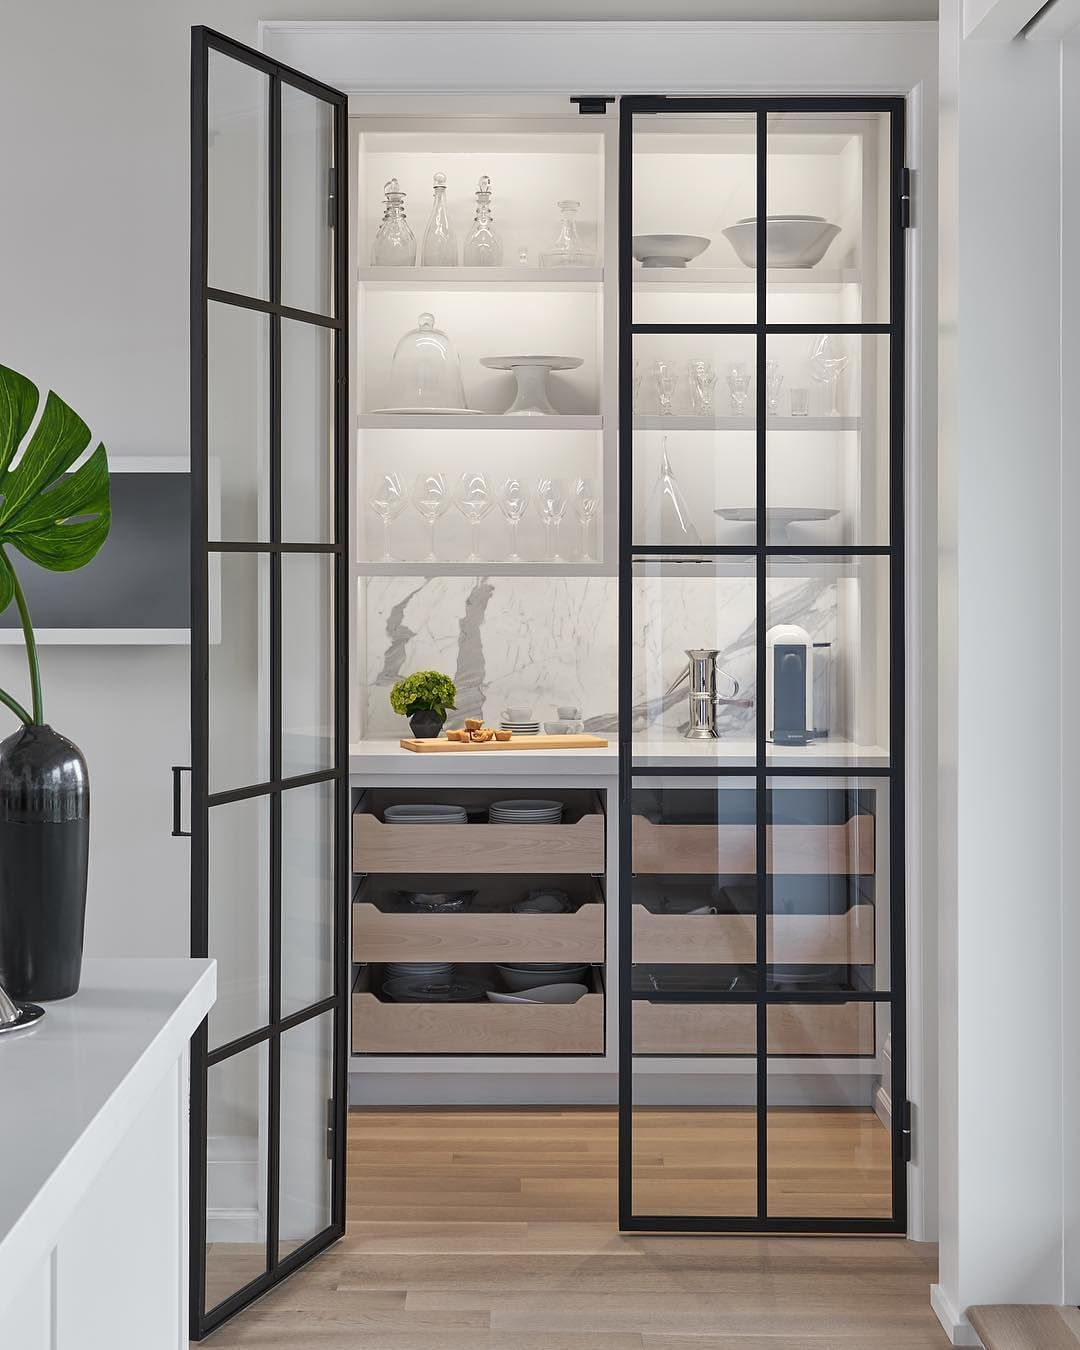 21 Stylish Pantry Door Ideas To Make Your Kitchen Efficient Pantry Design Pantry Room Glass Pantry Door